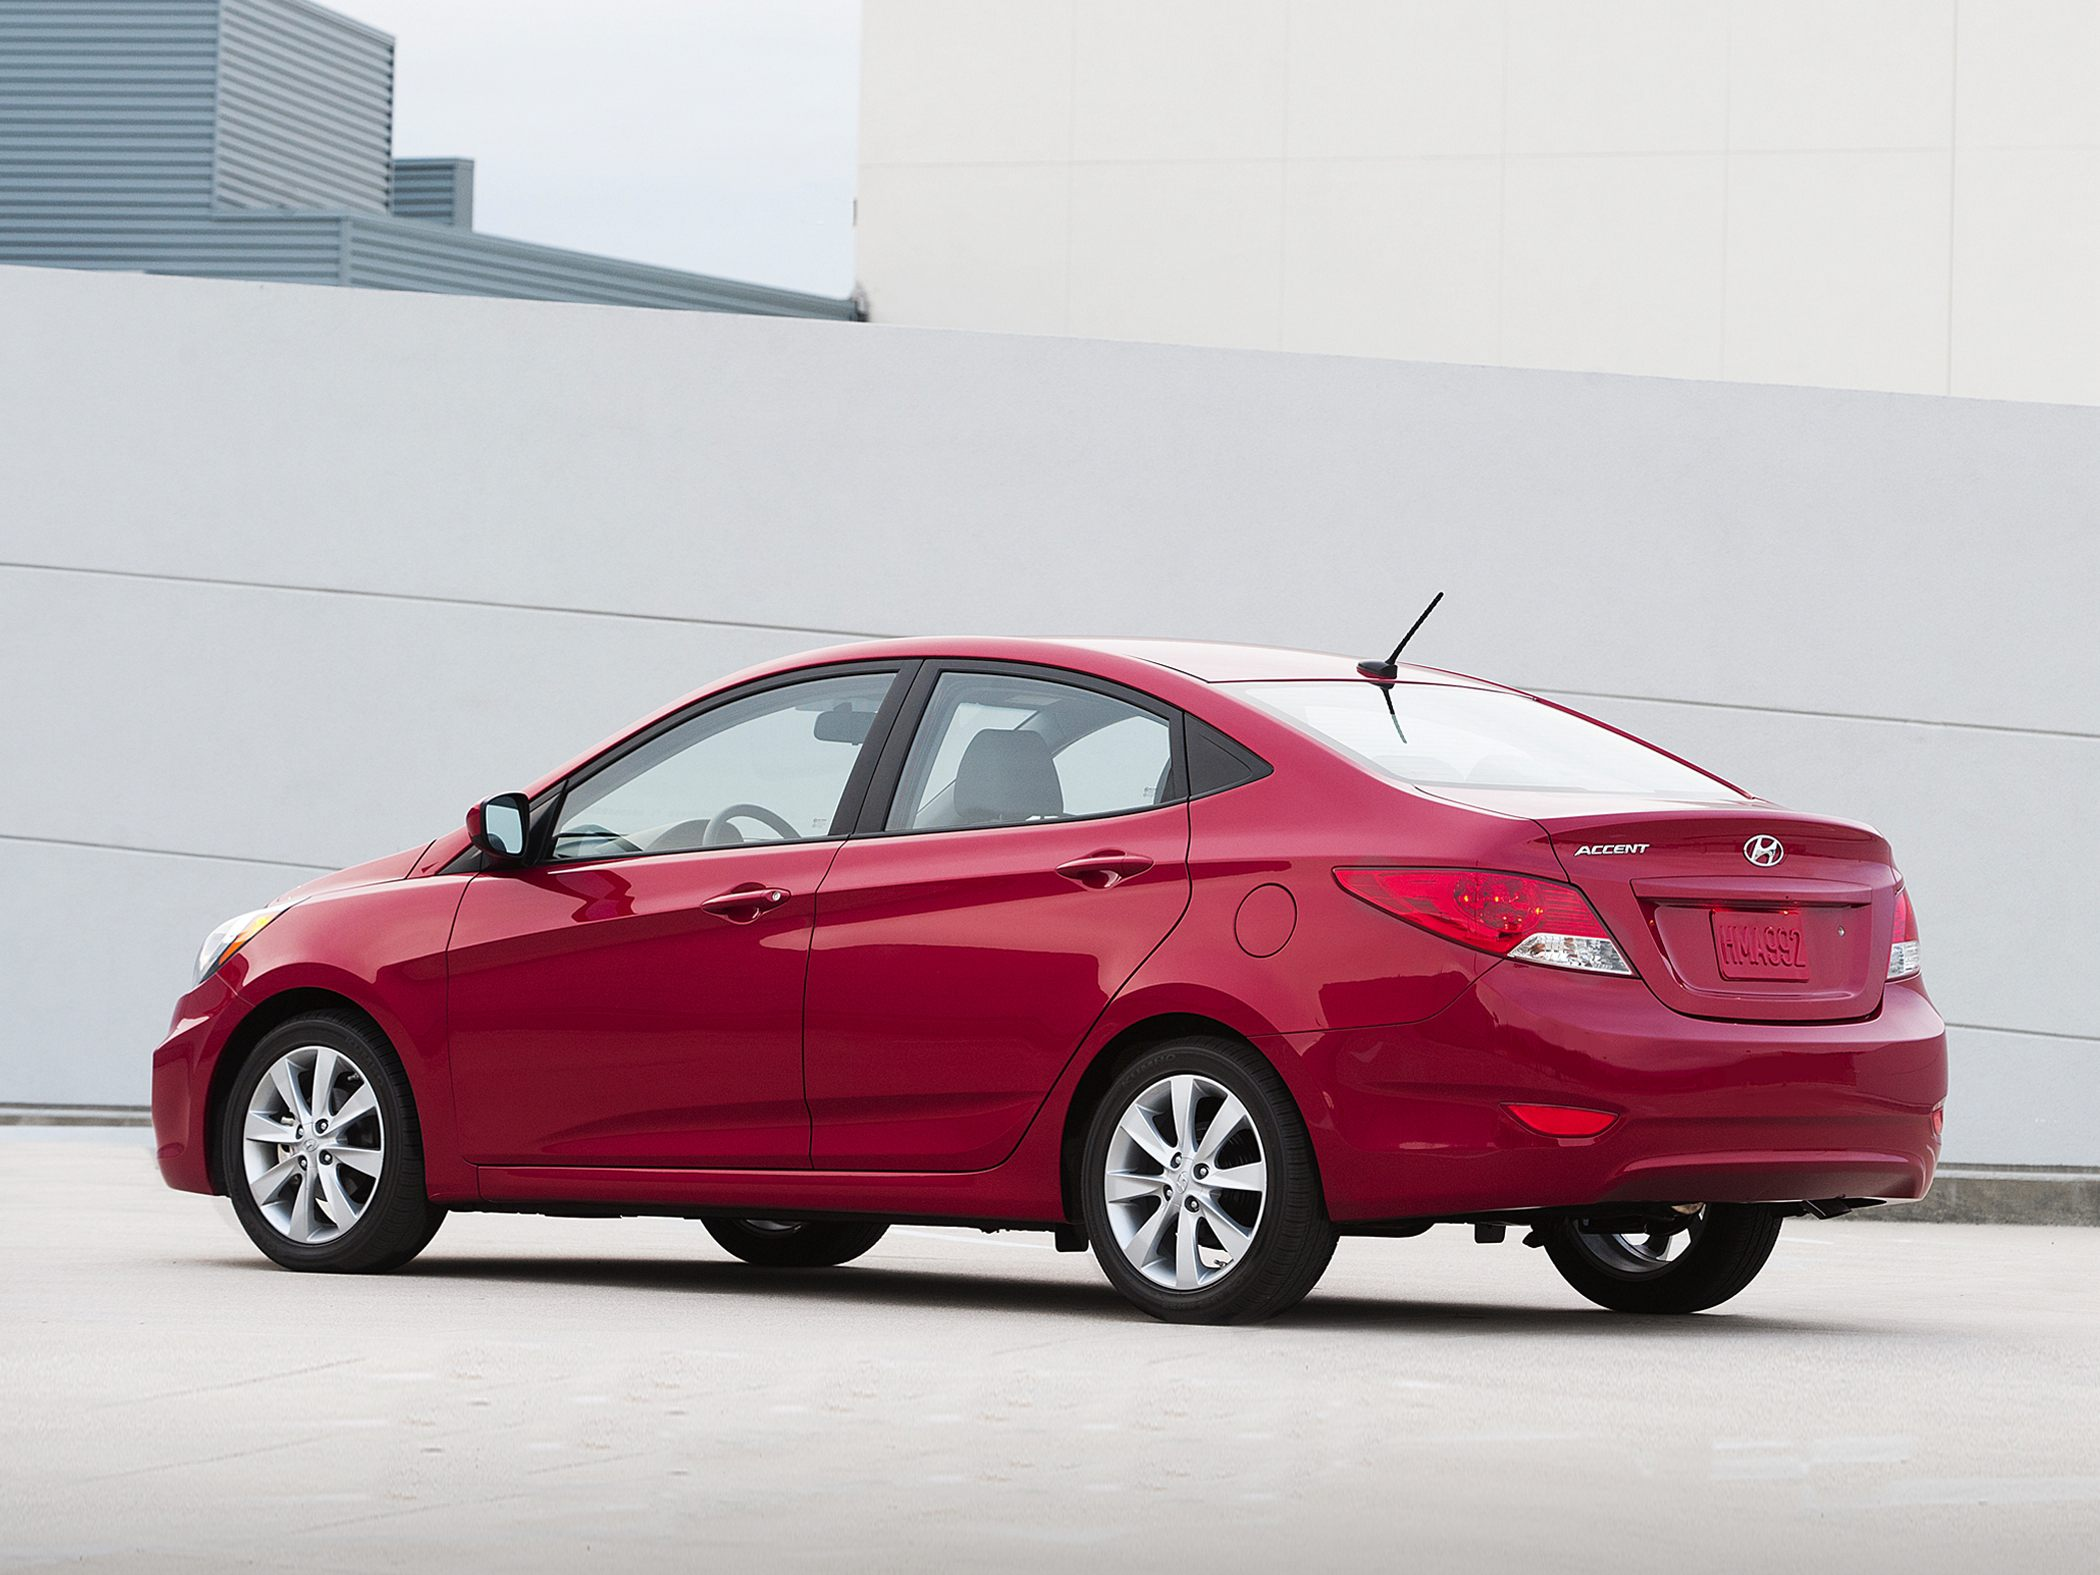 2013 Hyundai Accent Sedan >> 2013 Hyundai Accent Iv Sedan Pictures Information And